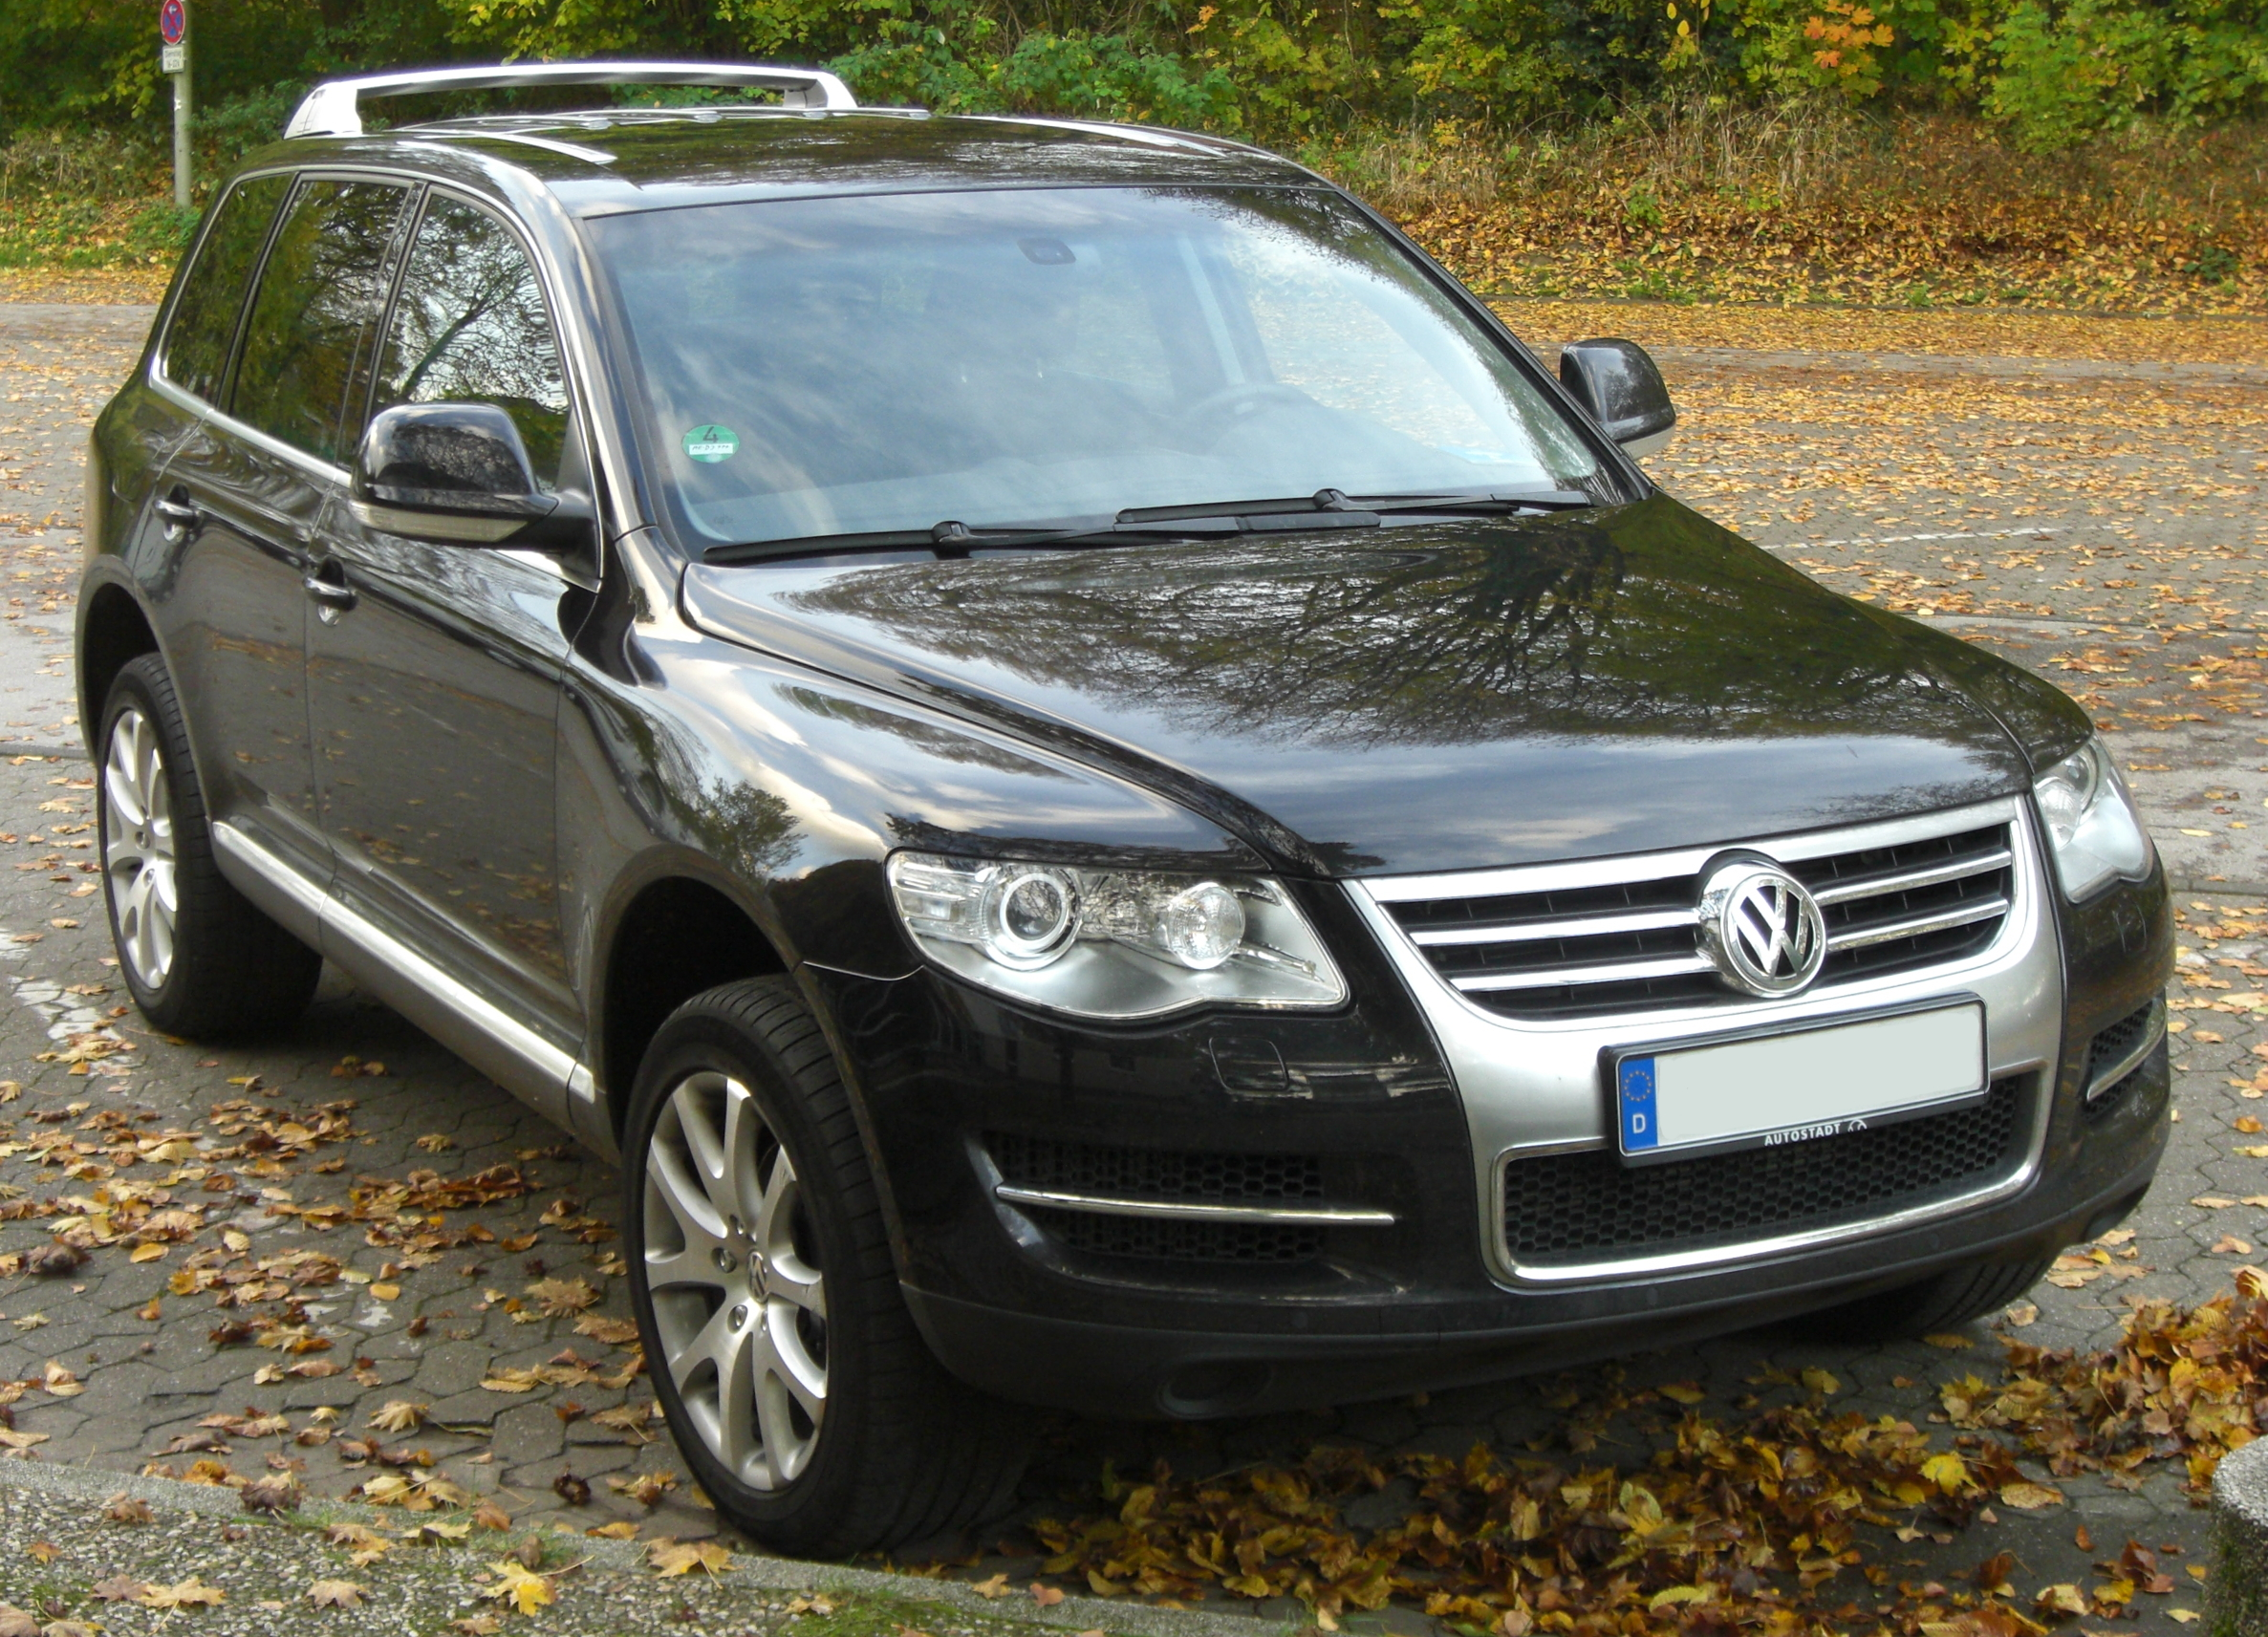 2007 volkswagen touareg v10 tdi related infomation specifications weili automotive network. Black Bedroom Furniture Sets. Home Design Ideas